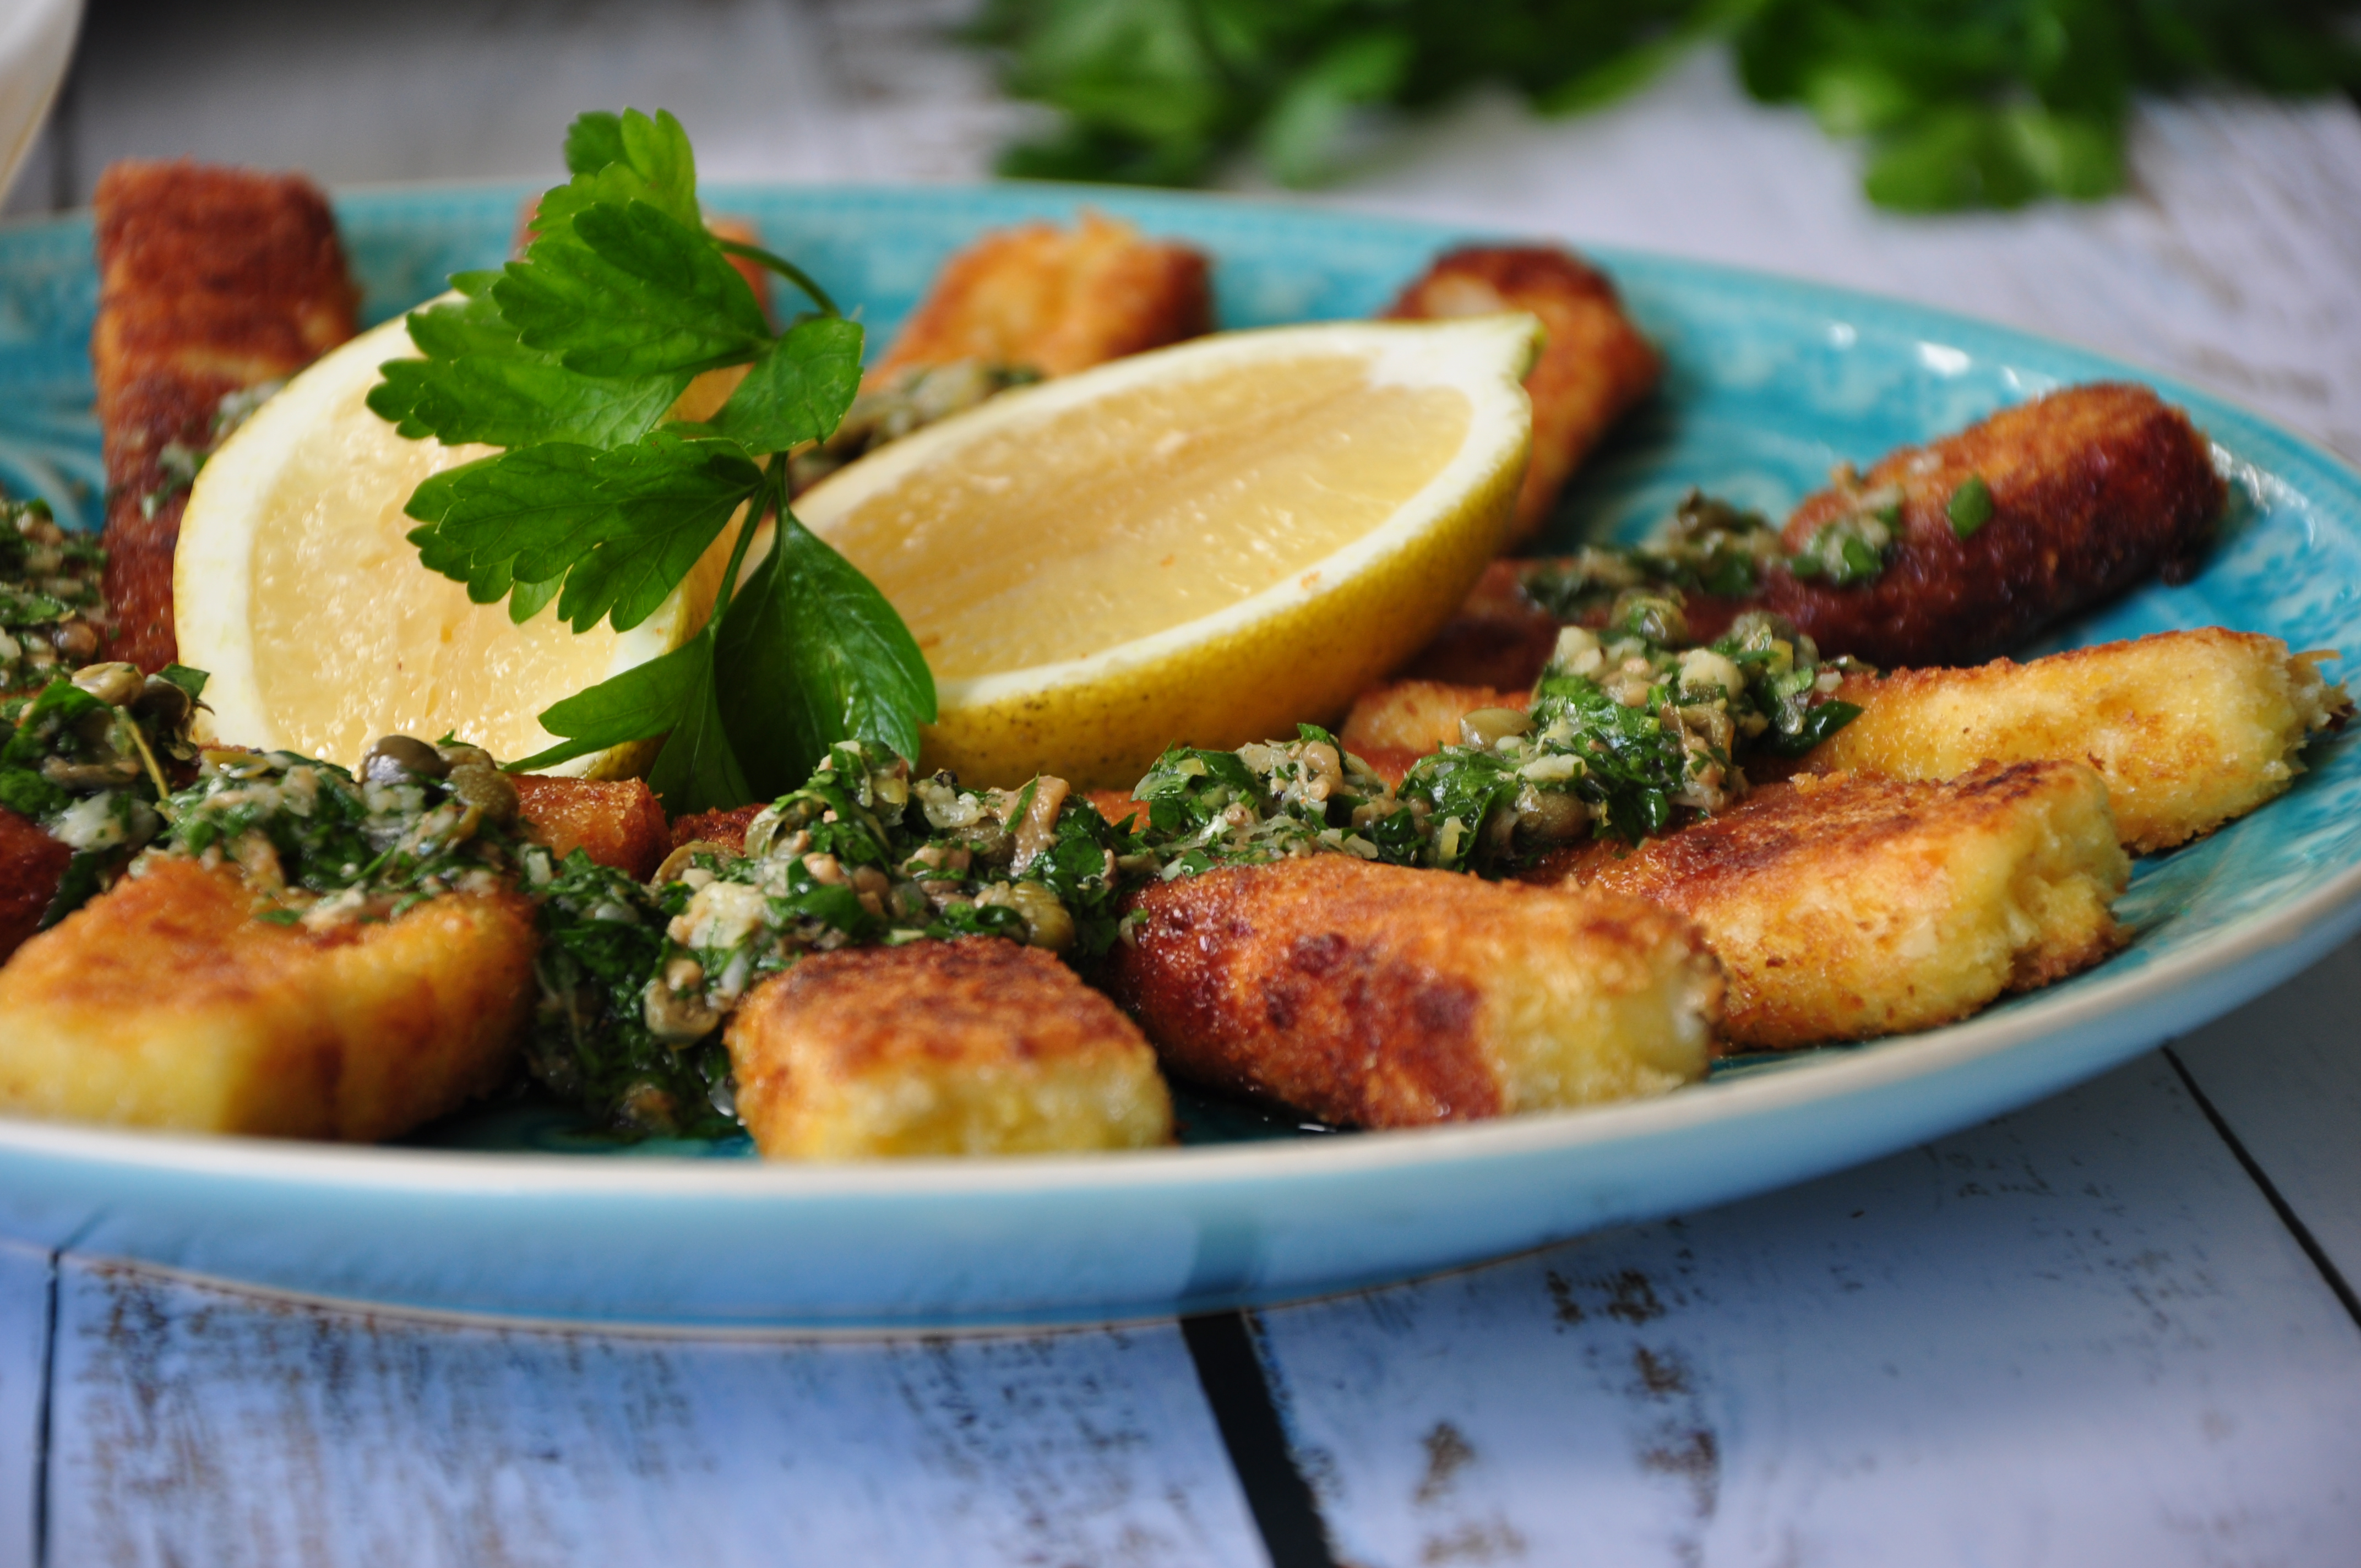 Haloumi fries with roasted garlic, anchovy and caper sauce are a terrific holiday season finger food